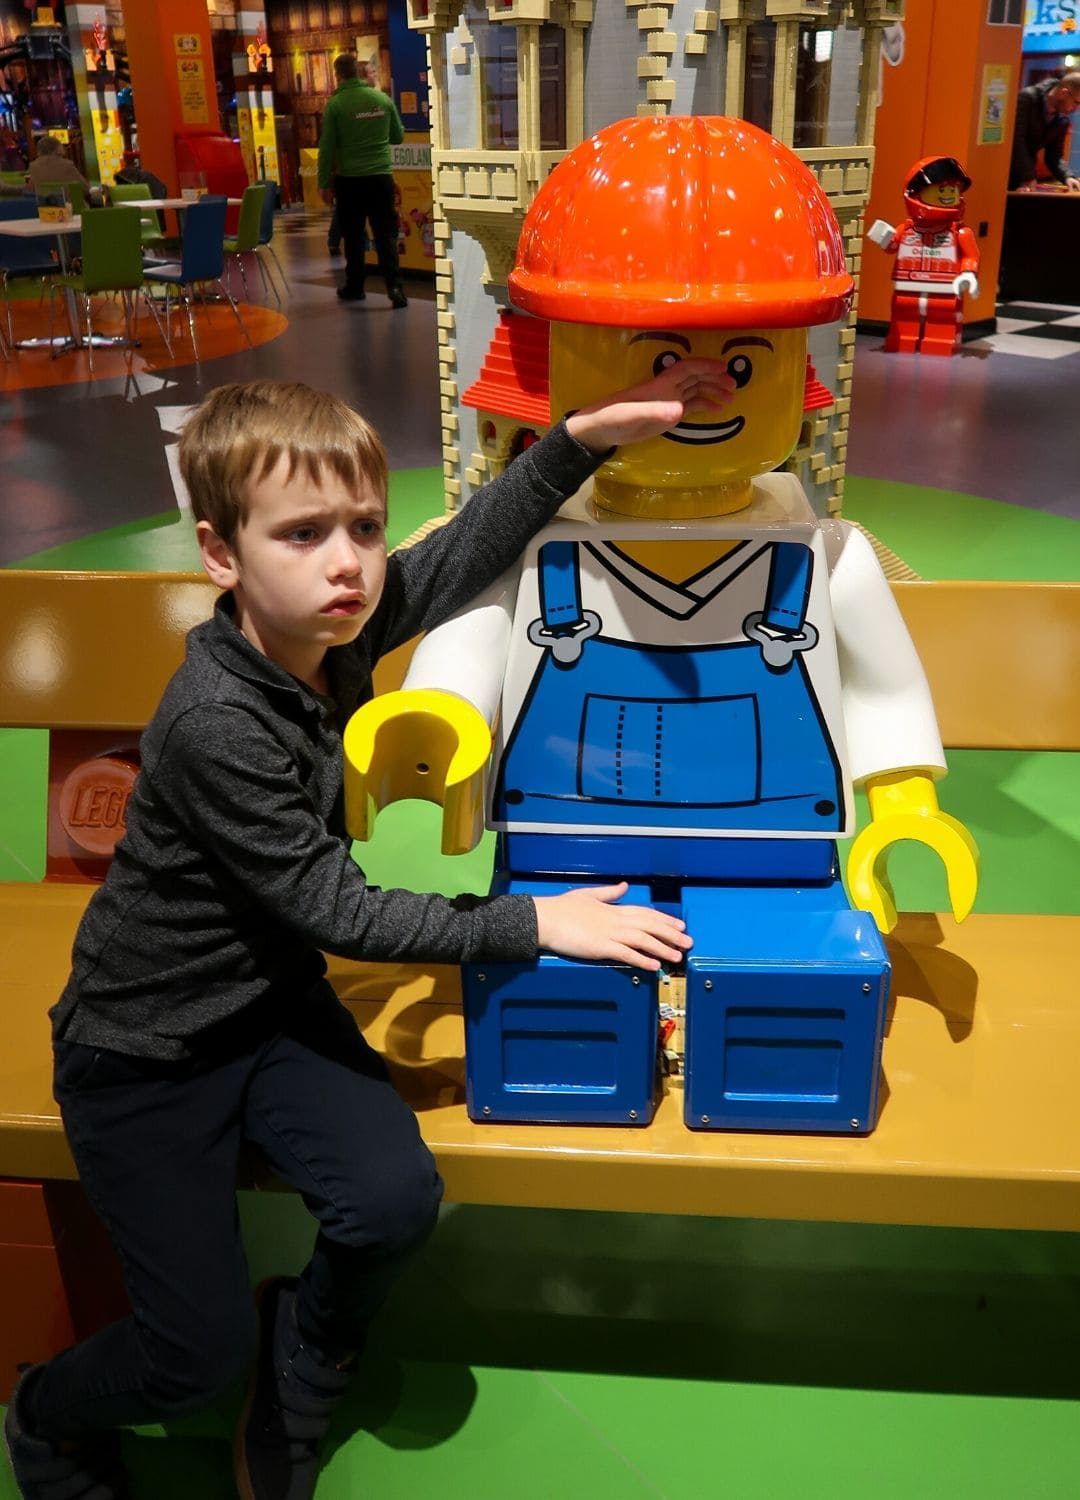 Boy looking sad next to giant lego figure.